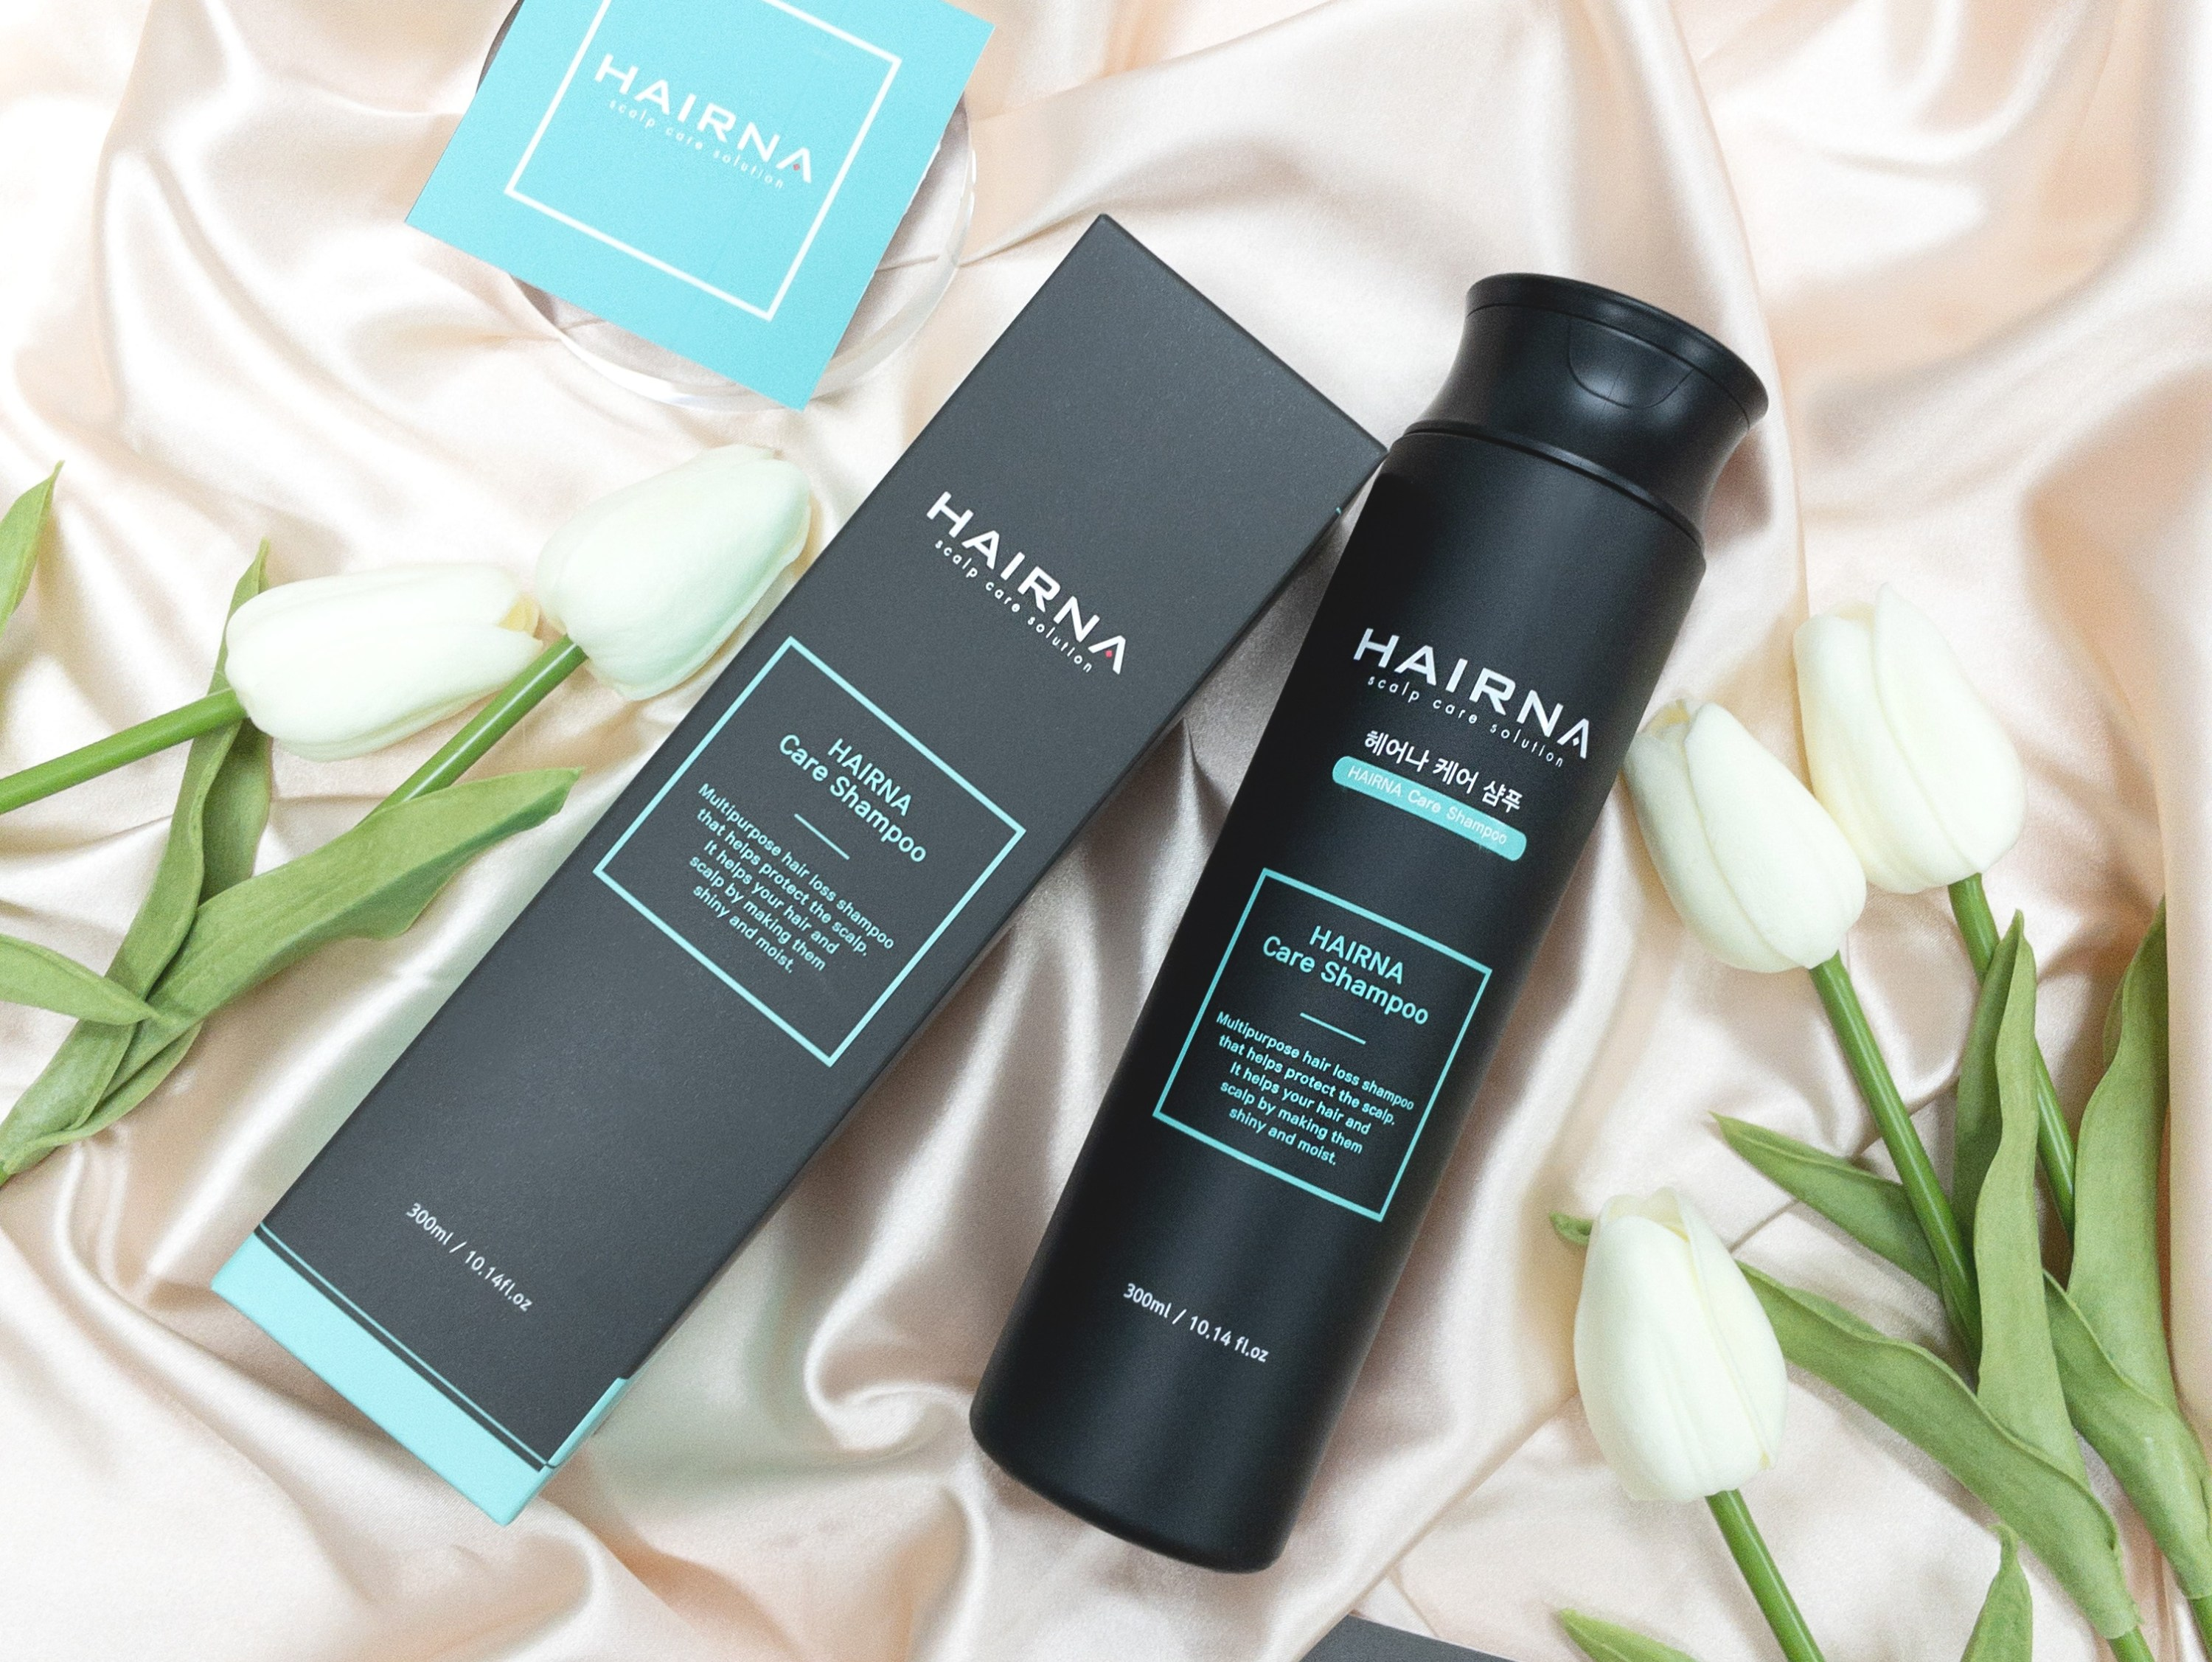 HAIRNA CARE SHAMPOO Scalp protection Scalp soothing Scalp barrier reinforcement Functional shampoo that relieve hair loss symptoms. maypharm